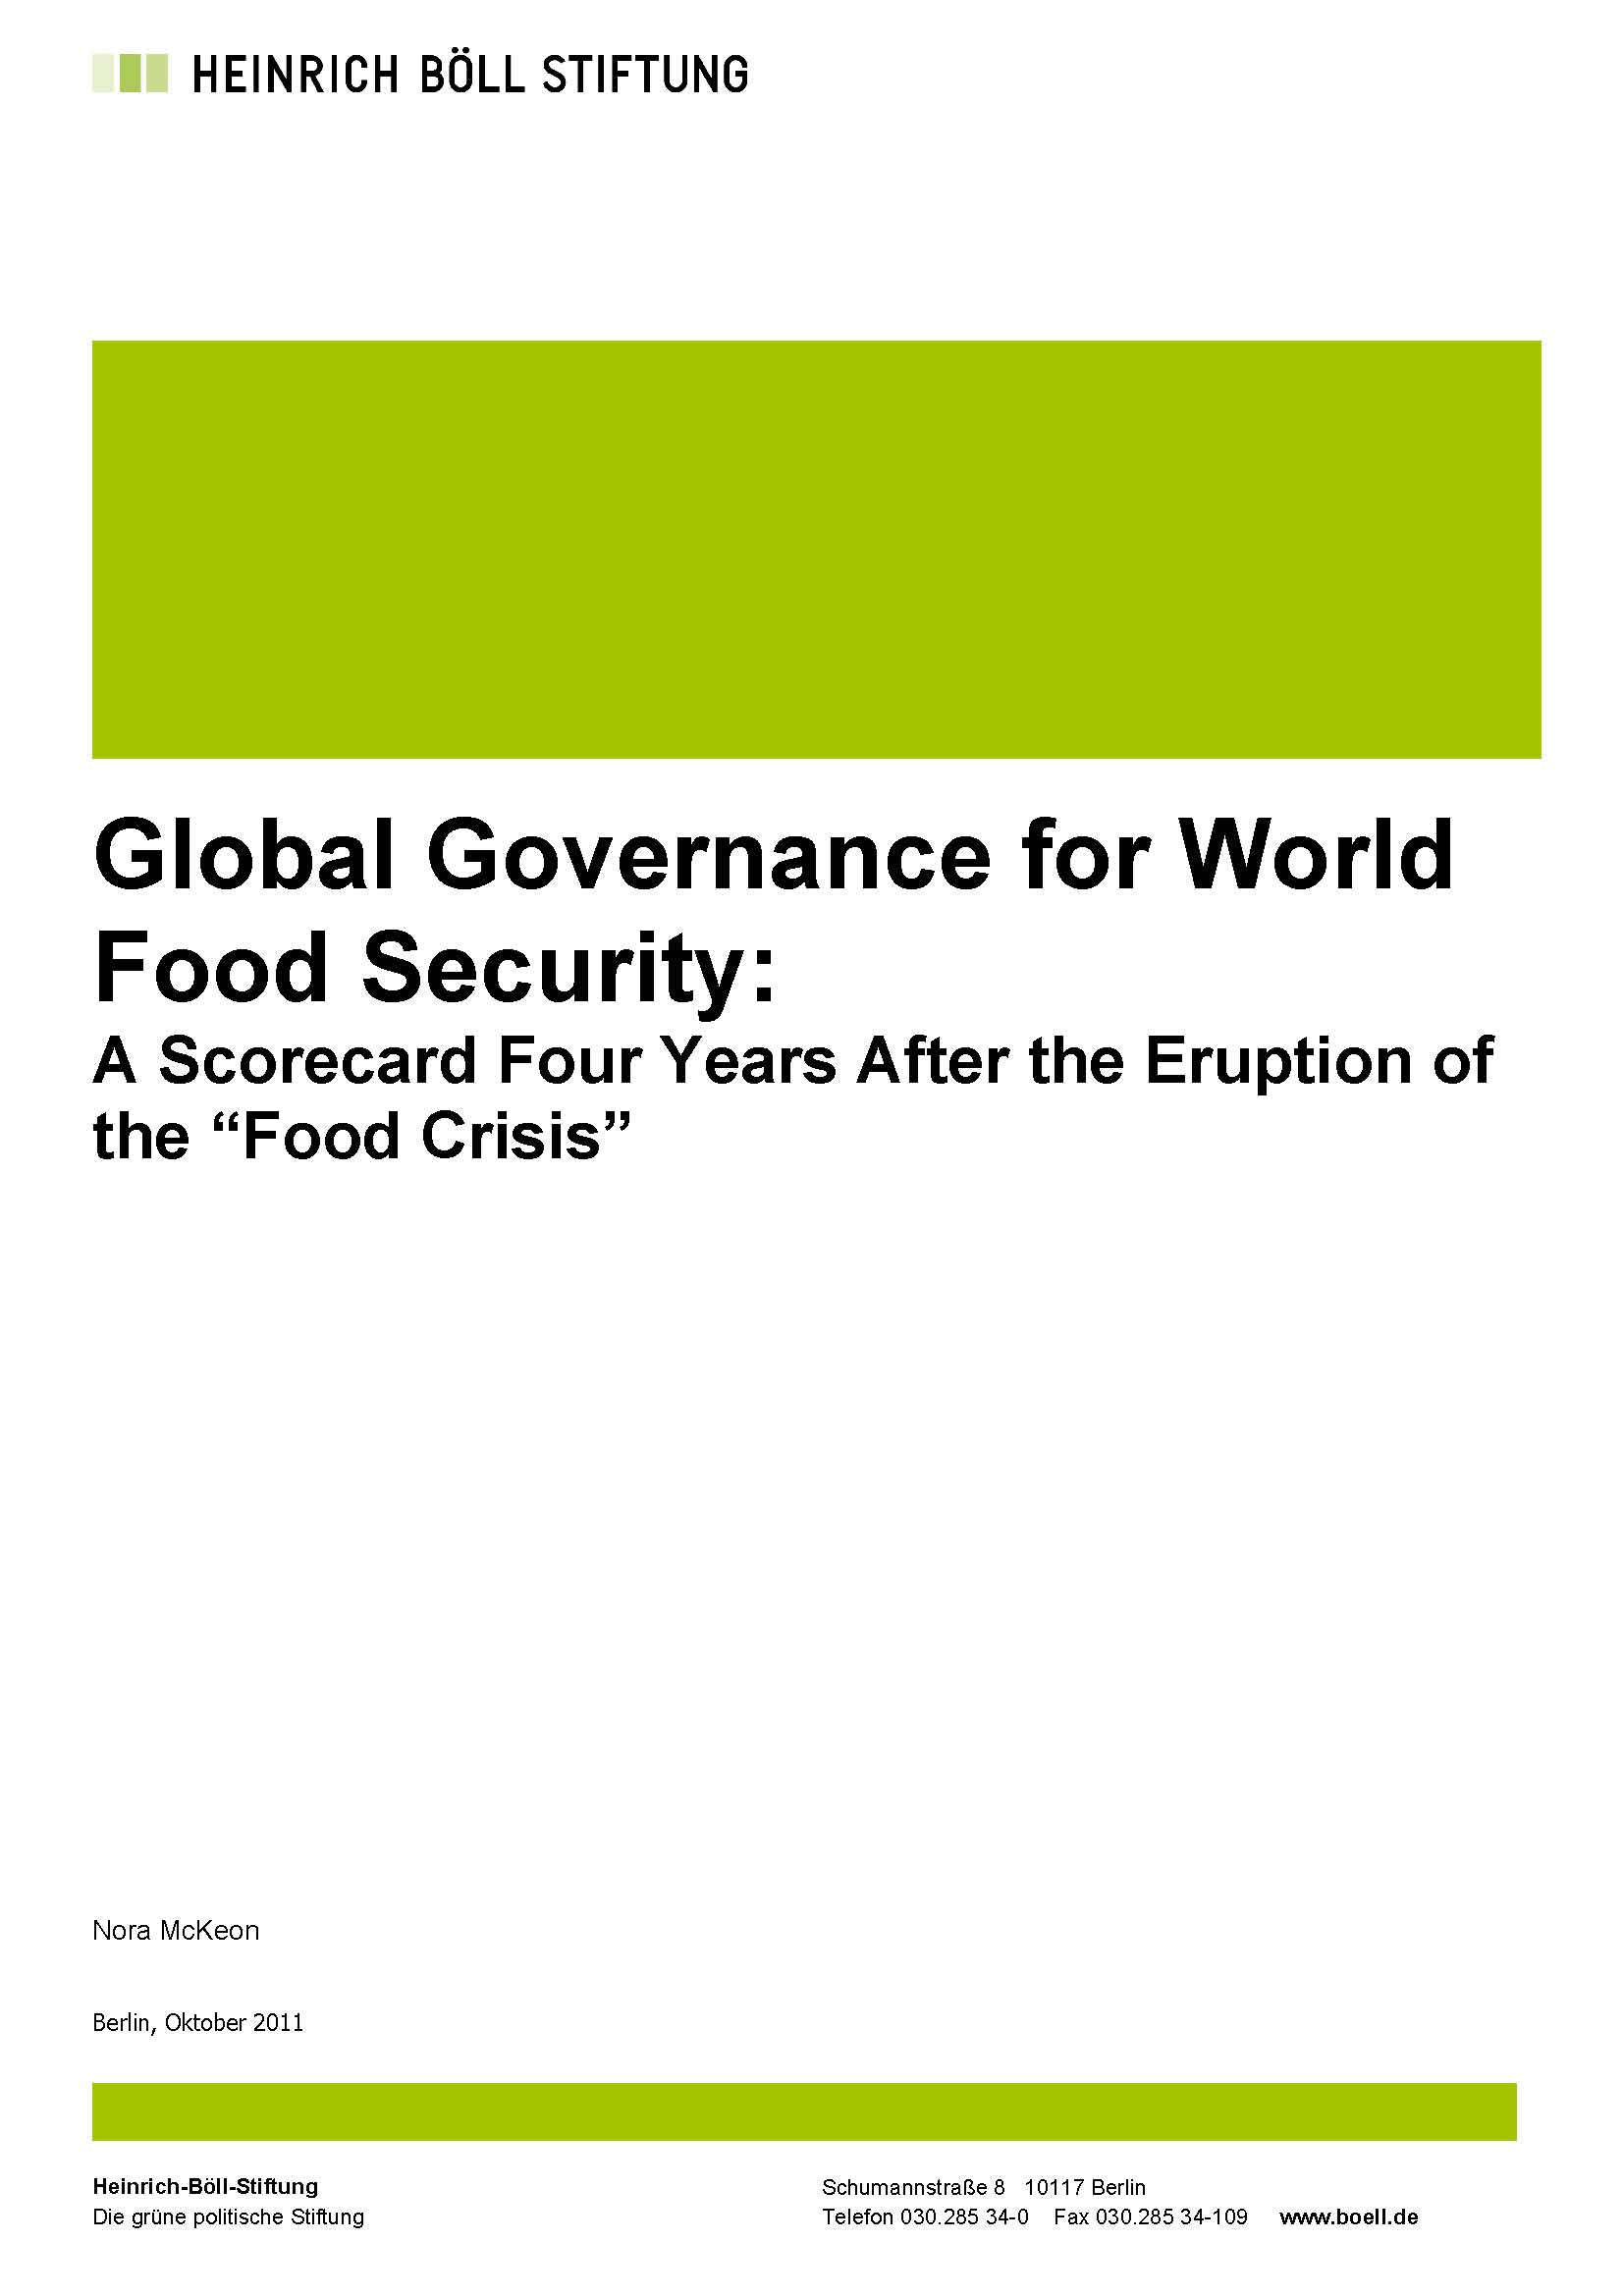 """Global Governance for World Food Security: A Scorecard Four Years After the Eruption of the """"Food Crisis"""""""